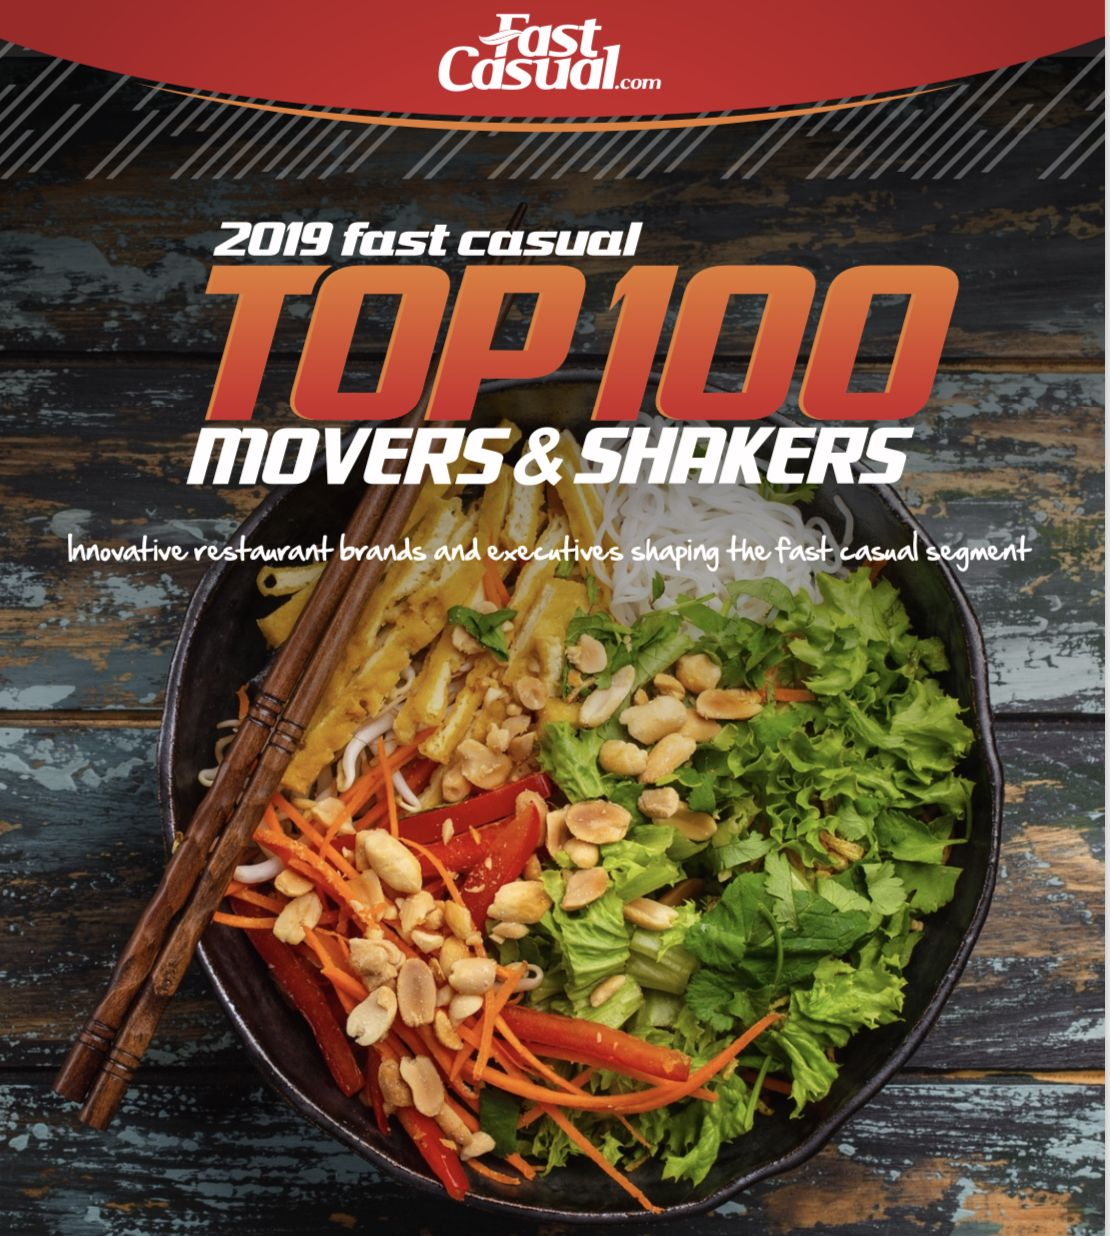 Crave Hot Dogs and BBQ Places #16 in Top 100 Movers and Shakers Awards